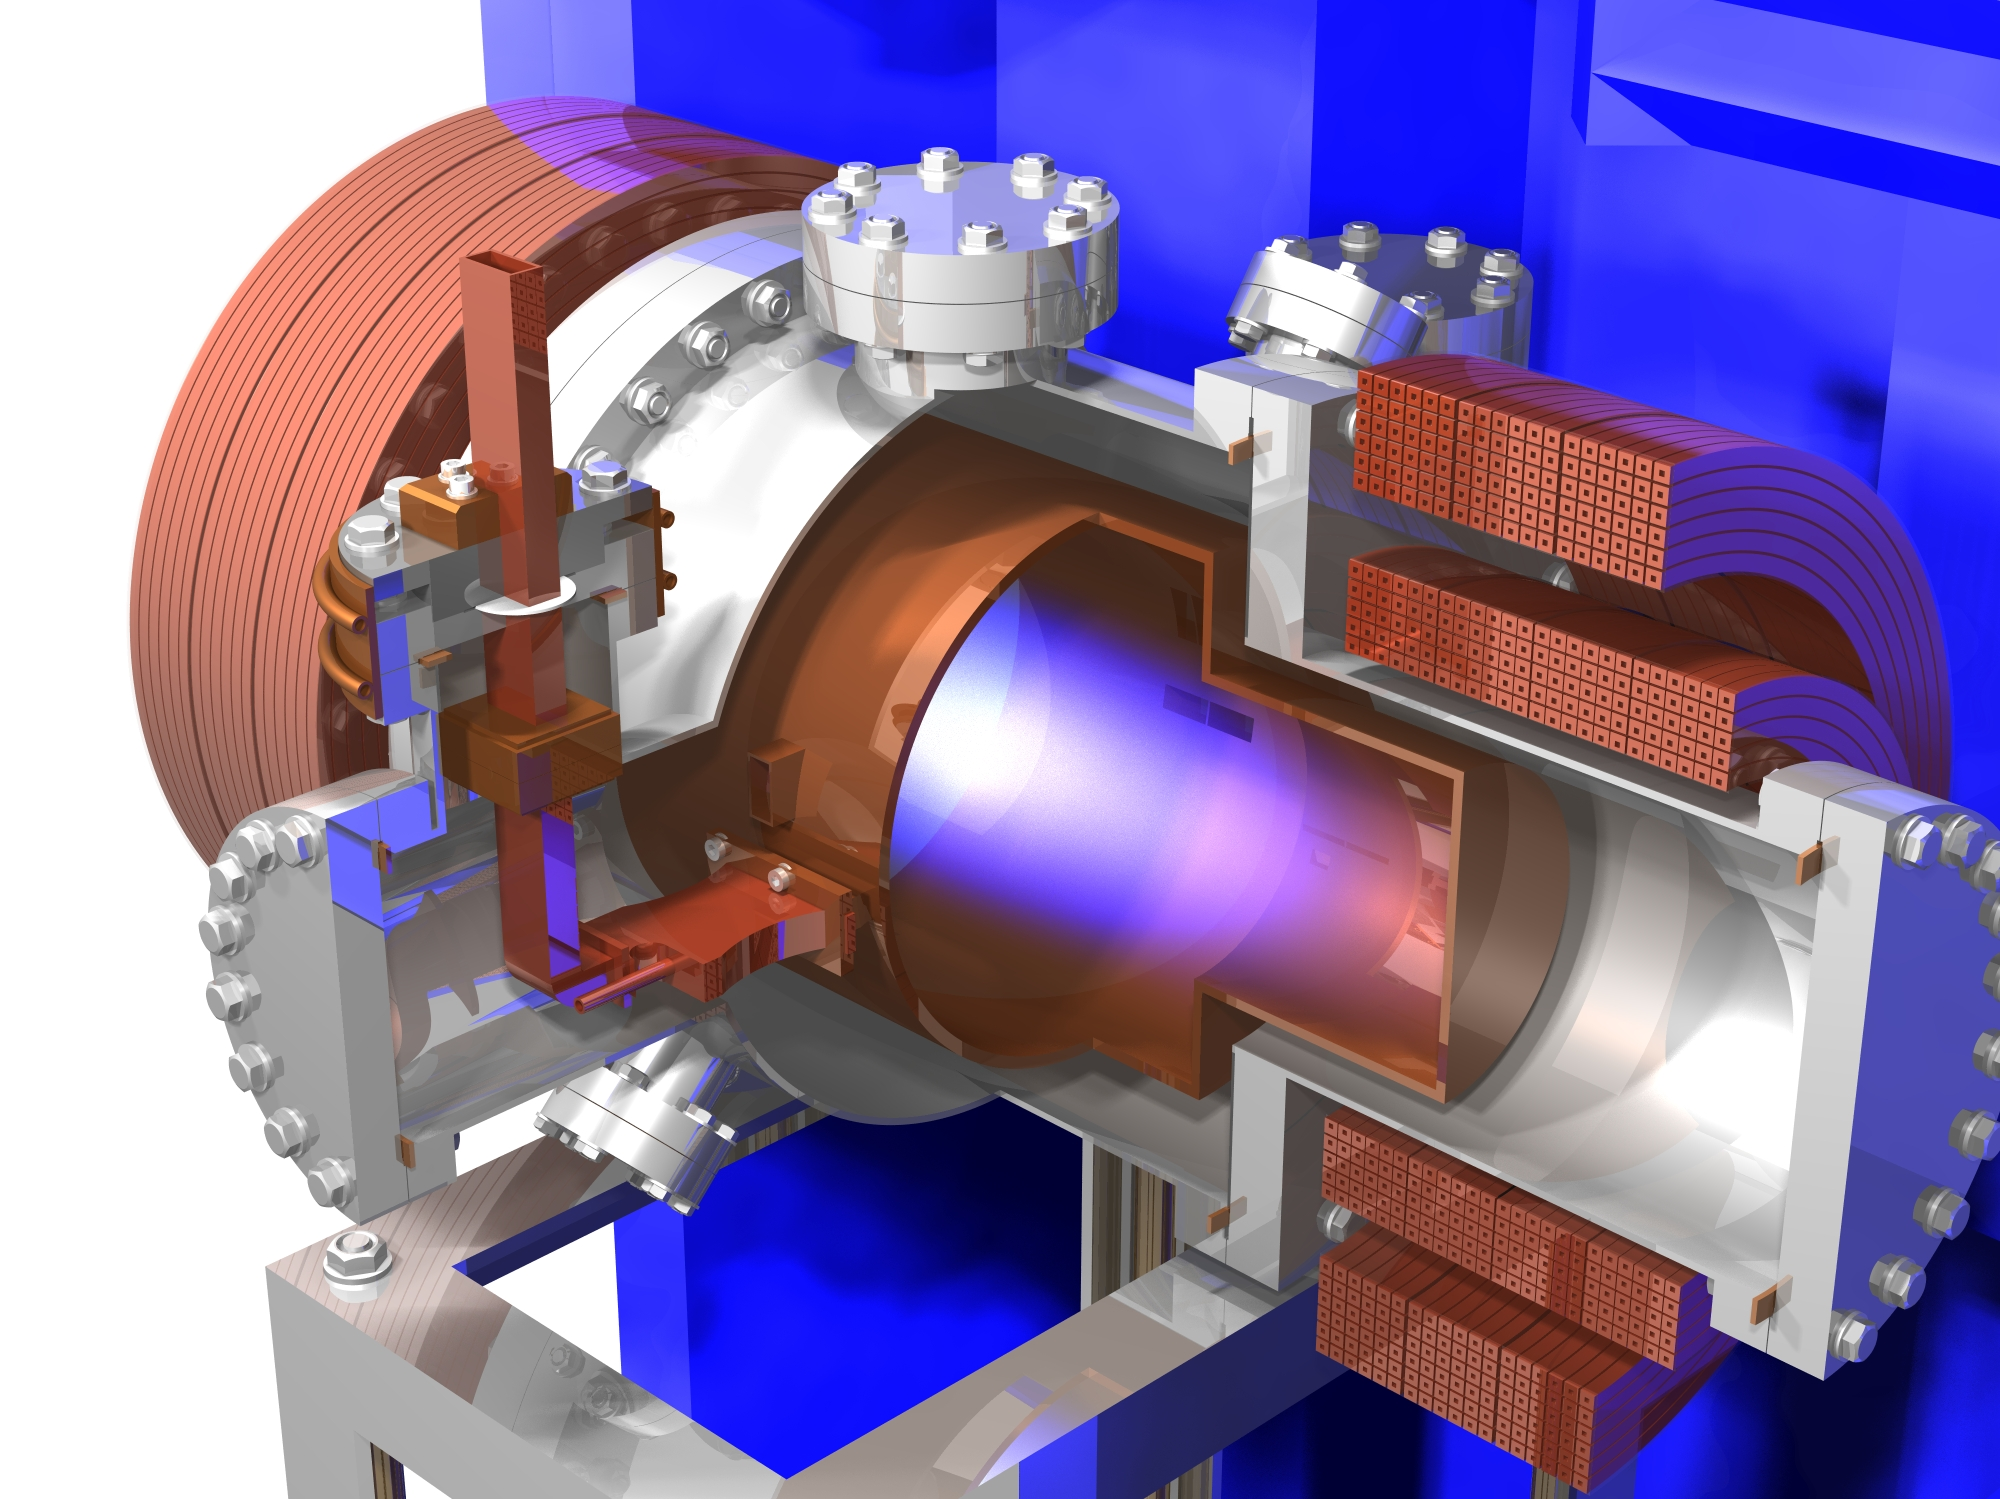 thesis of plasma physics Plasma physics is an important field of study in many research activities in the department plasmas are central in the physics of magnetic and inertial confinement fusion experiments.